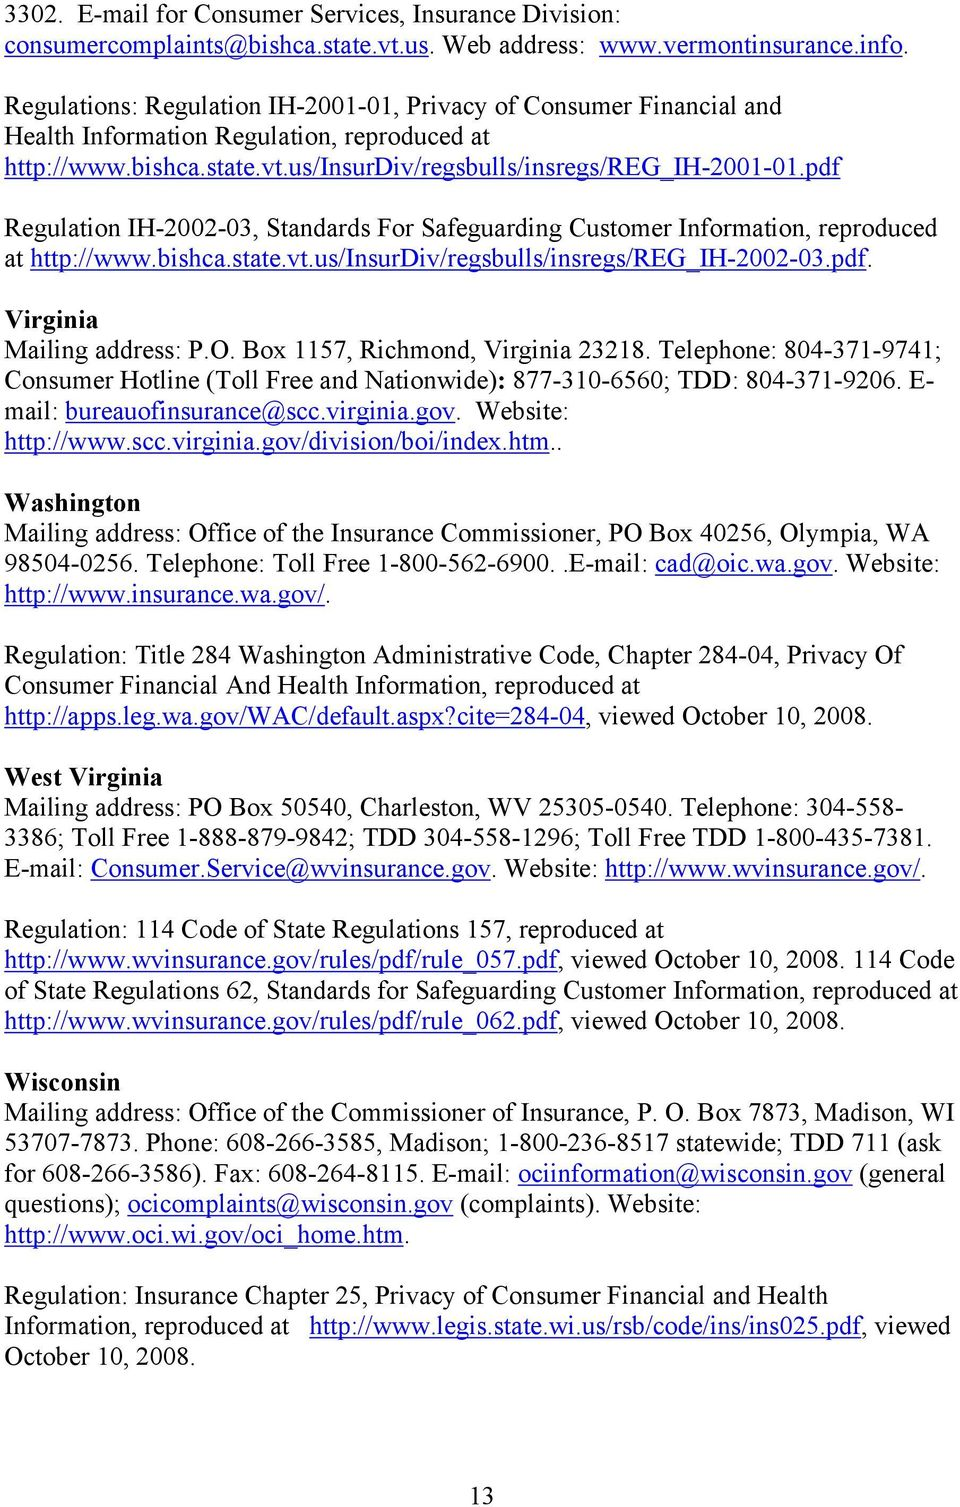 pdf Regulation IH-2002-03, Standards For Safeguarding Customer Information, reproduced at http://www.bishca.state.vt.us/insurdiv/regsbulls/insregs/reg_ih-2002-03.pdf. Virginia Mailing address: P.O.